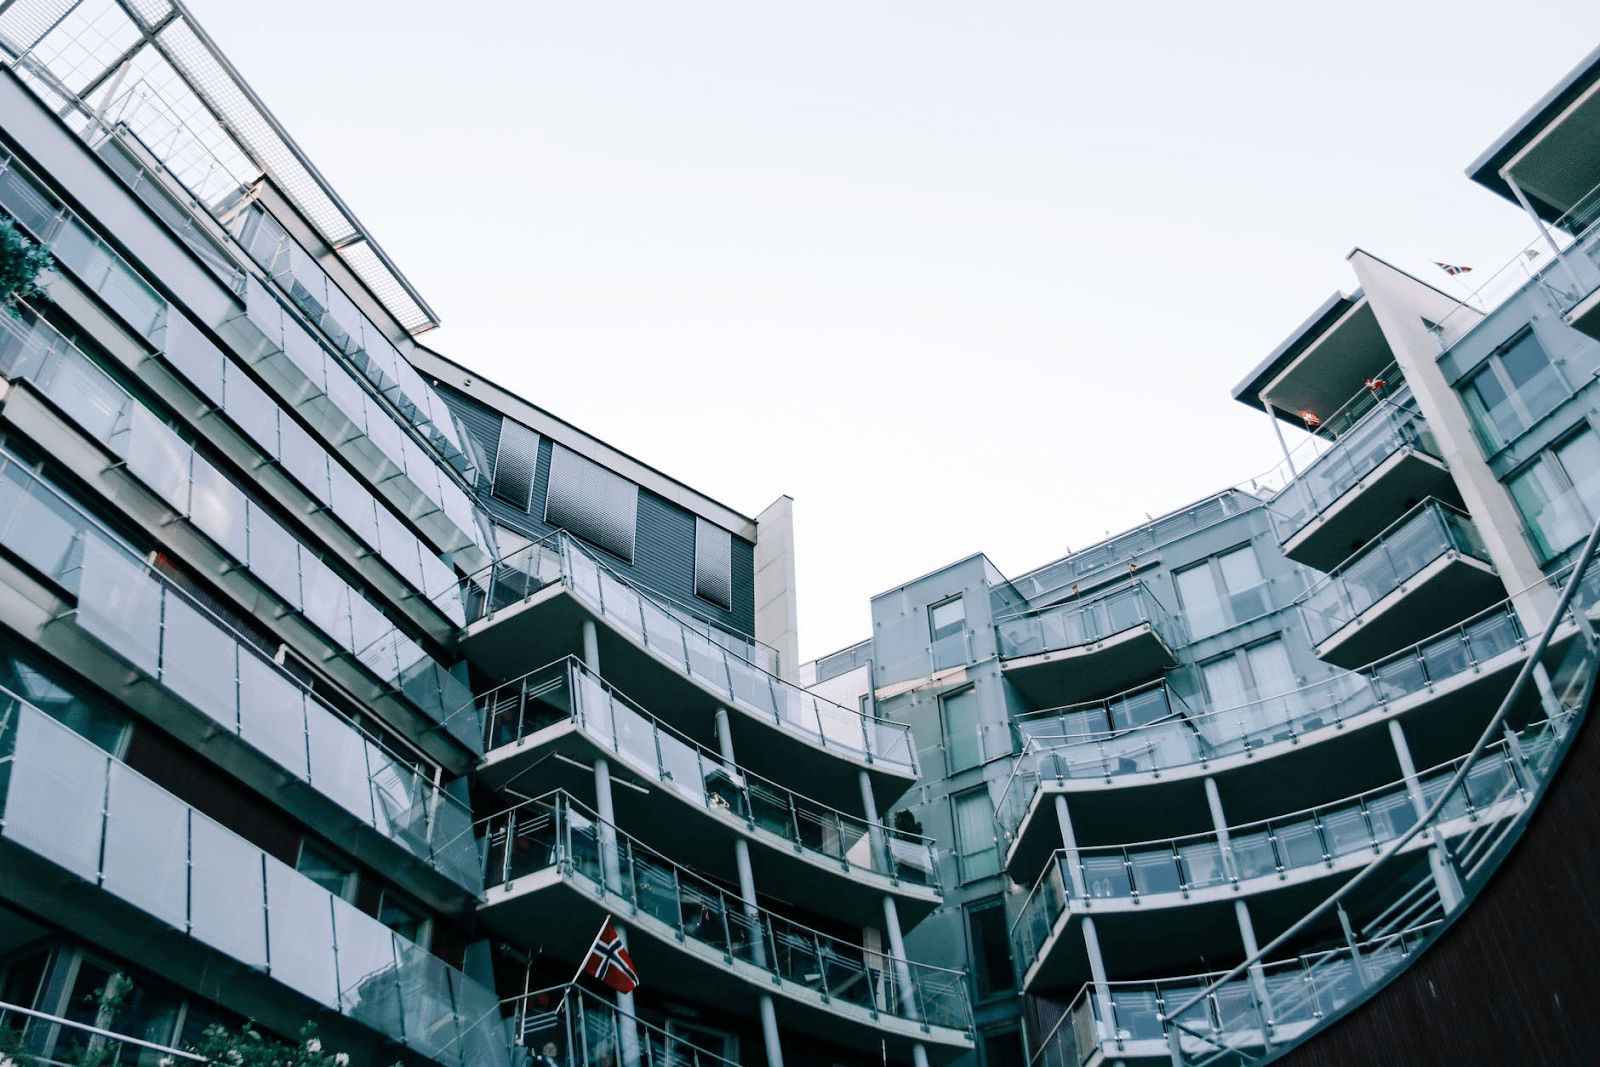 modern-geometric-glass-building-with-balconies prone to water damage remediation